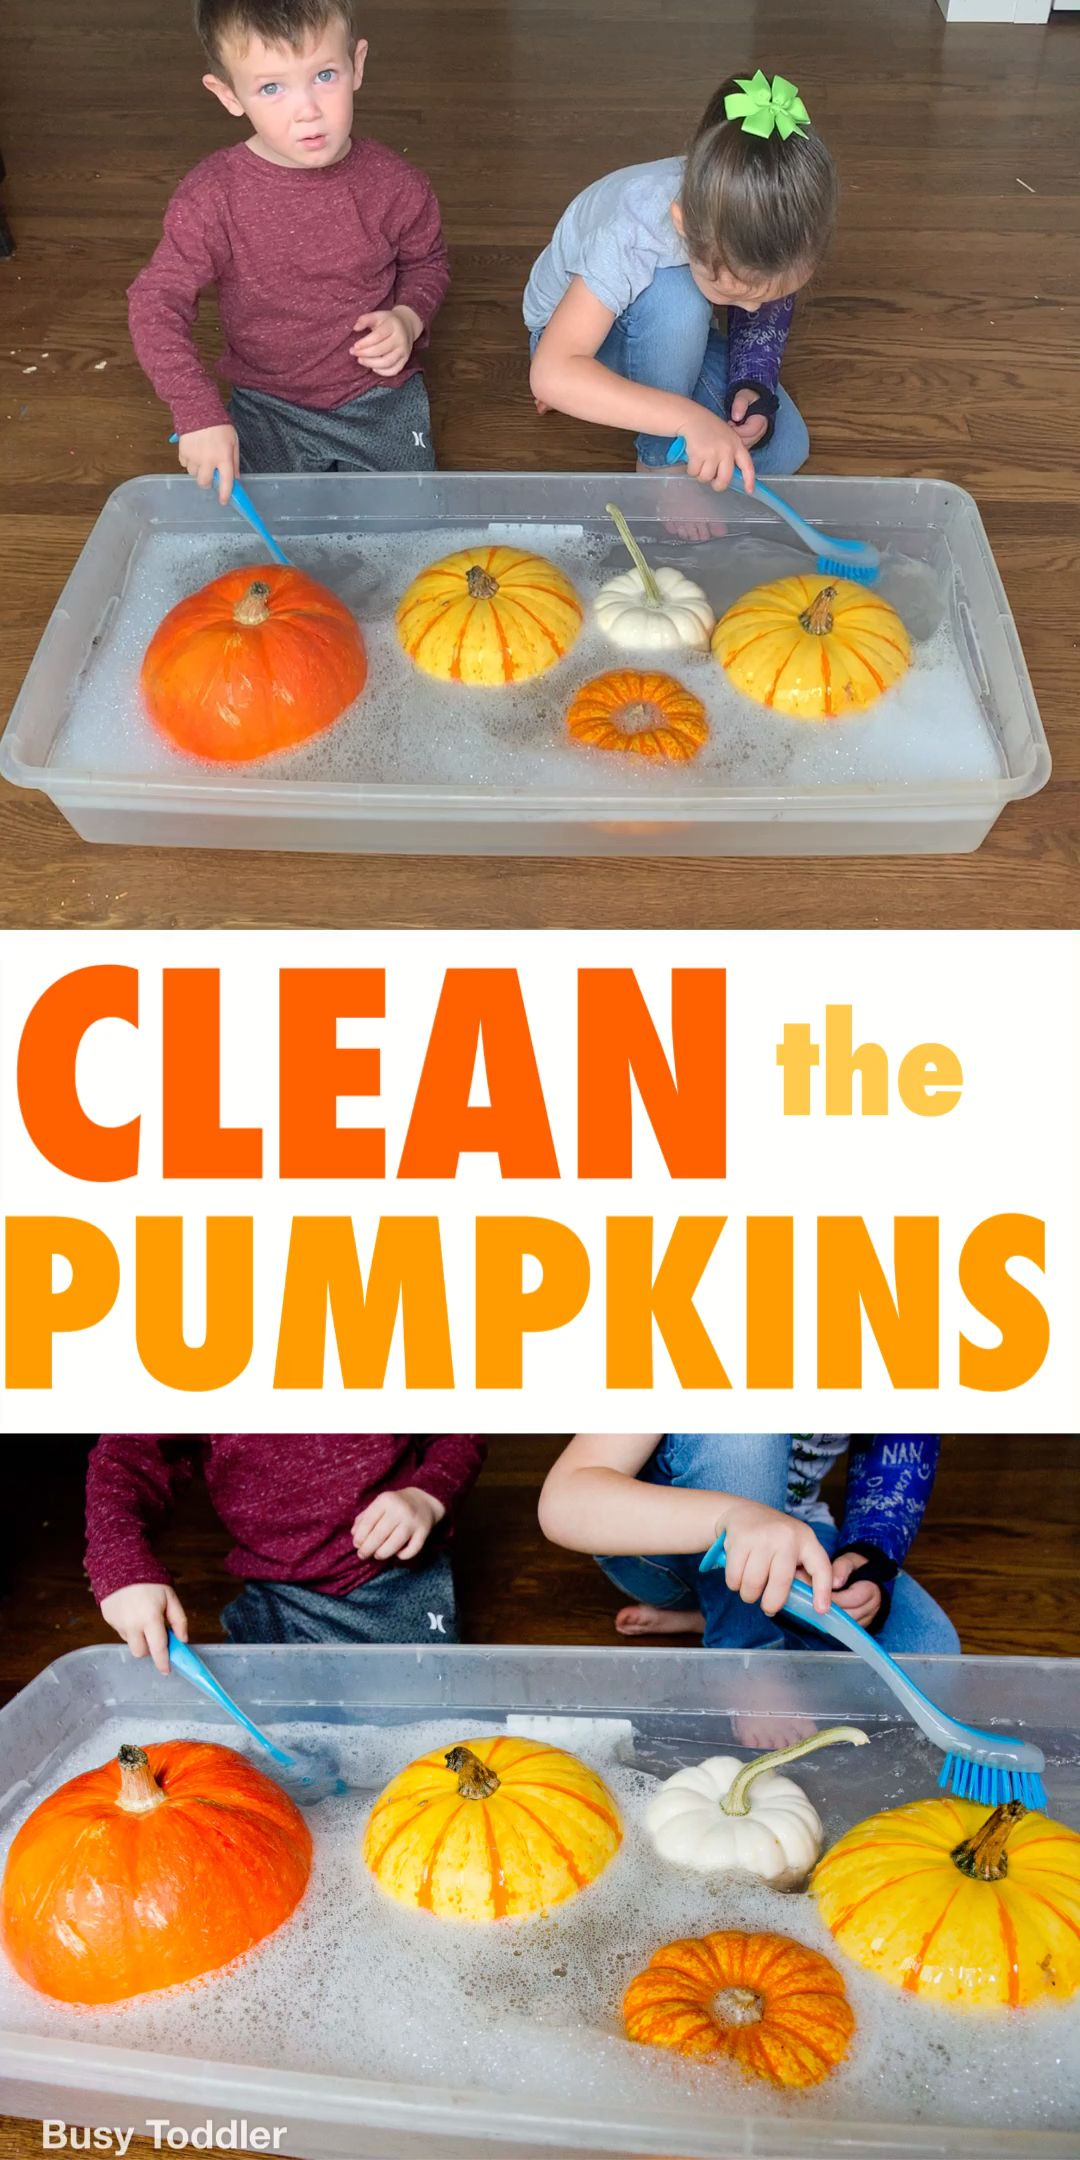 Clean the Pumpkins Fall Toddler Activity - Busy Toddler